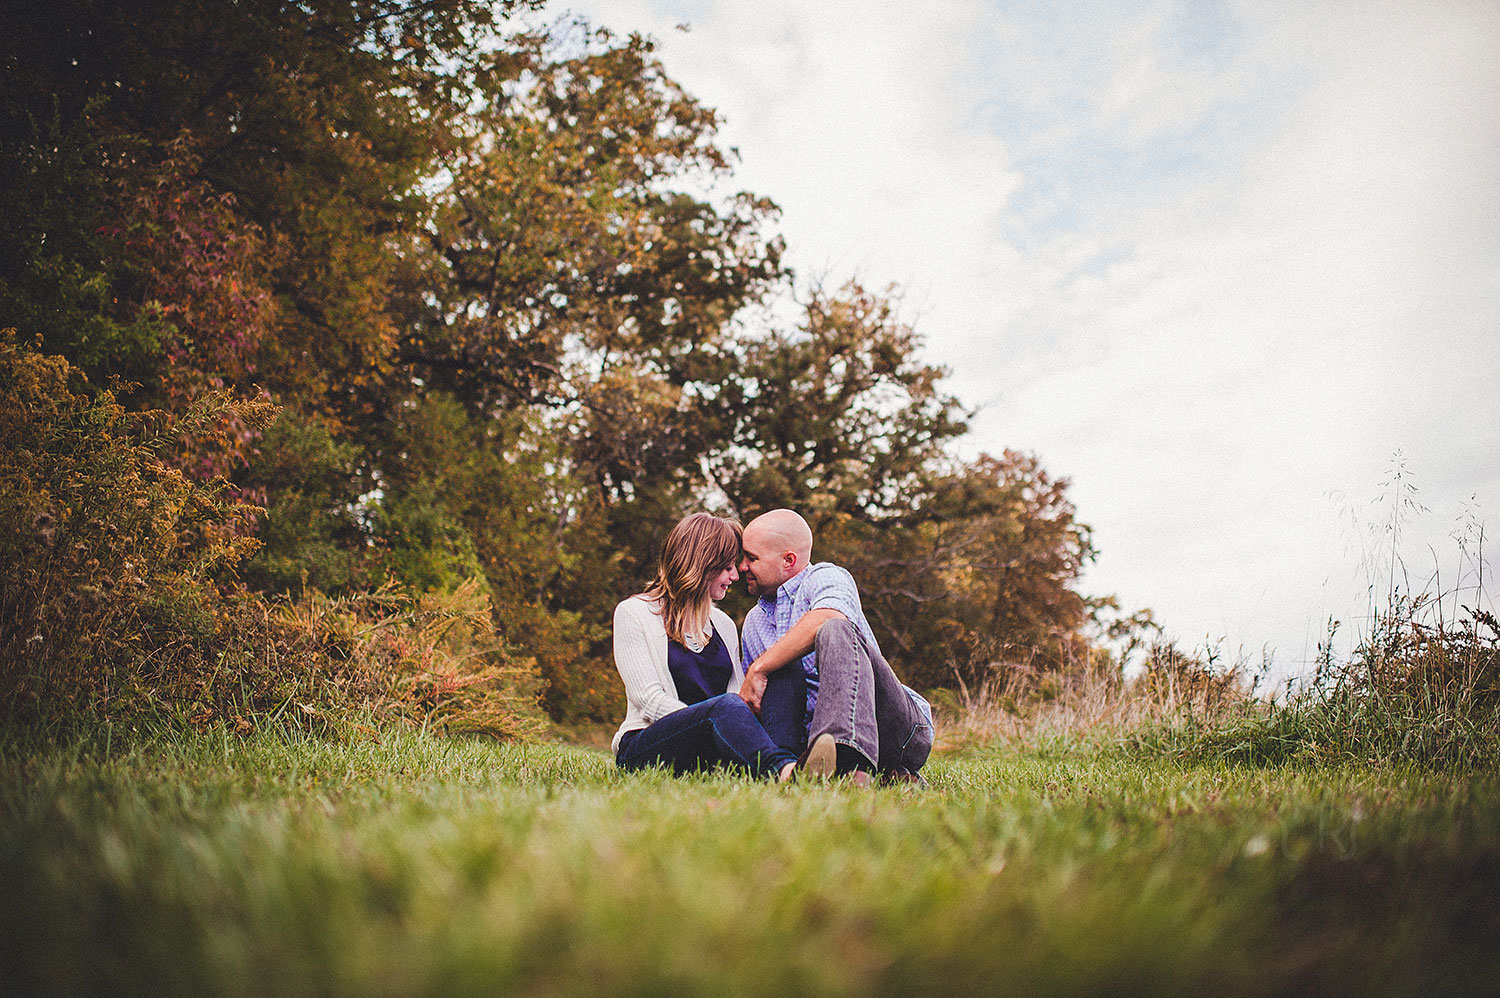 pat-robinson-photography-wilmington-engagement-session-8-2.jpg